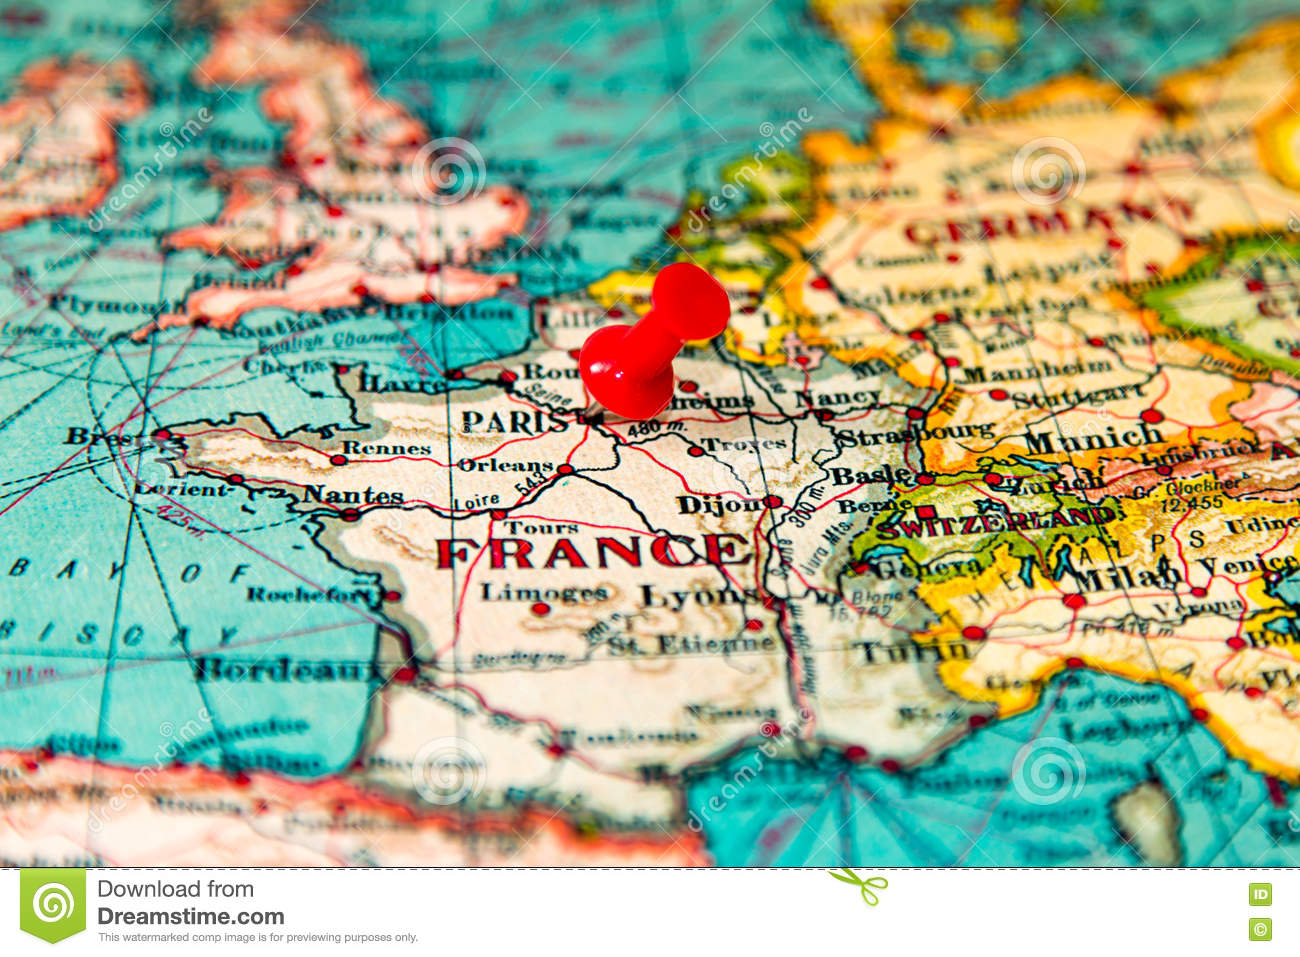 Map Of France And Europe.Paris France Pinned On Vintage Map Of Europe Stock Image Image Of